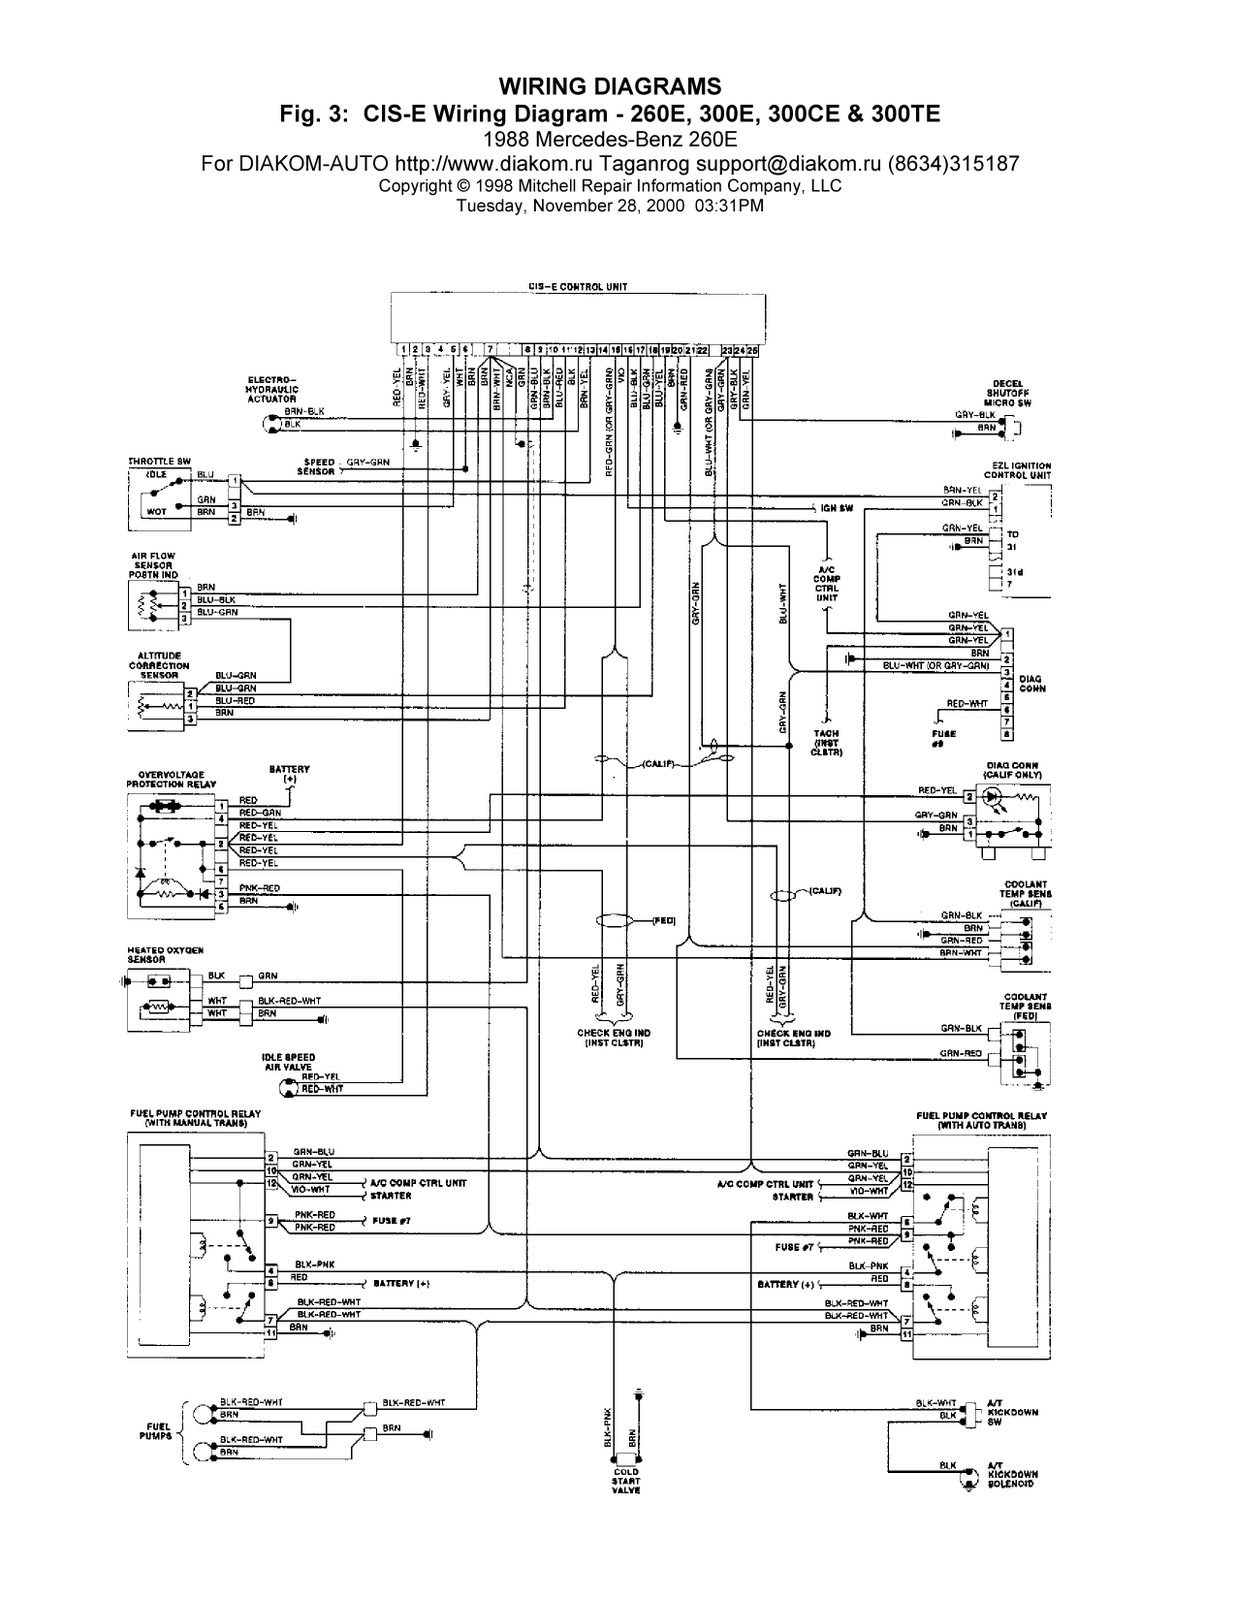 mercedes benz sprinter radio wiring diagram 2006 chevy silverado bose r129